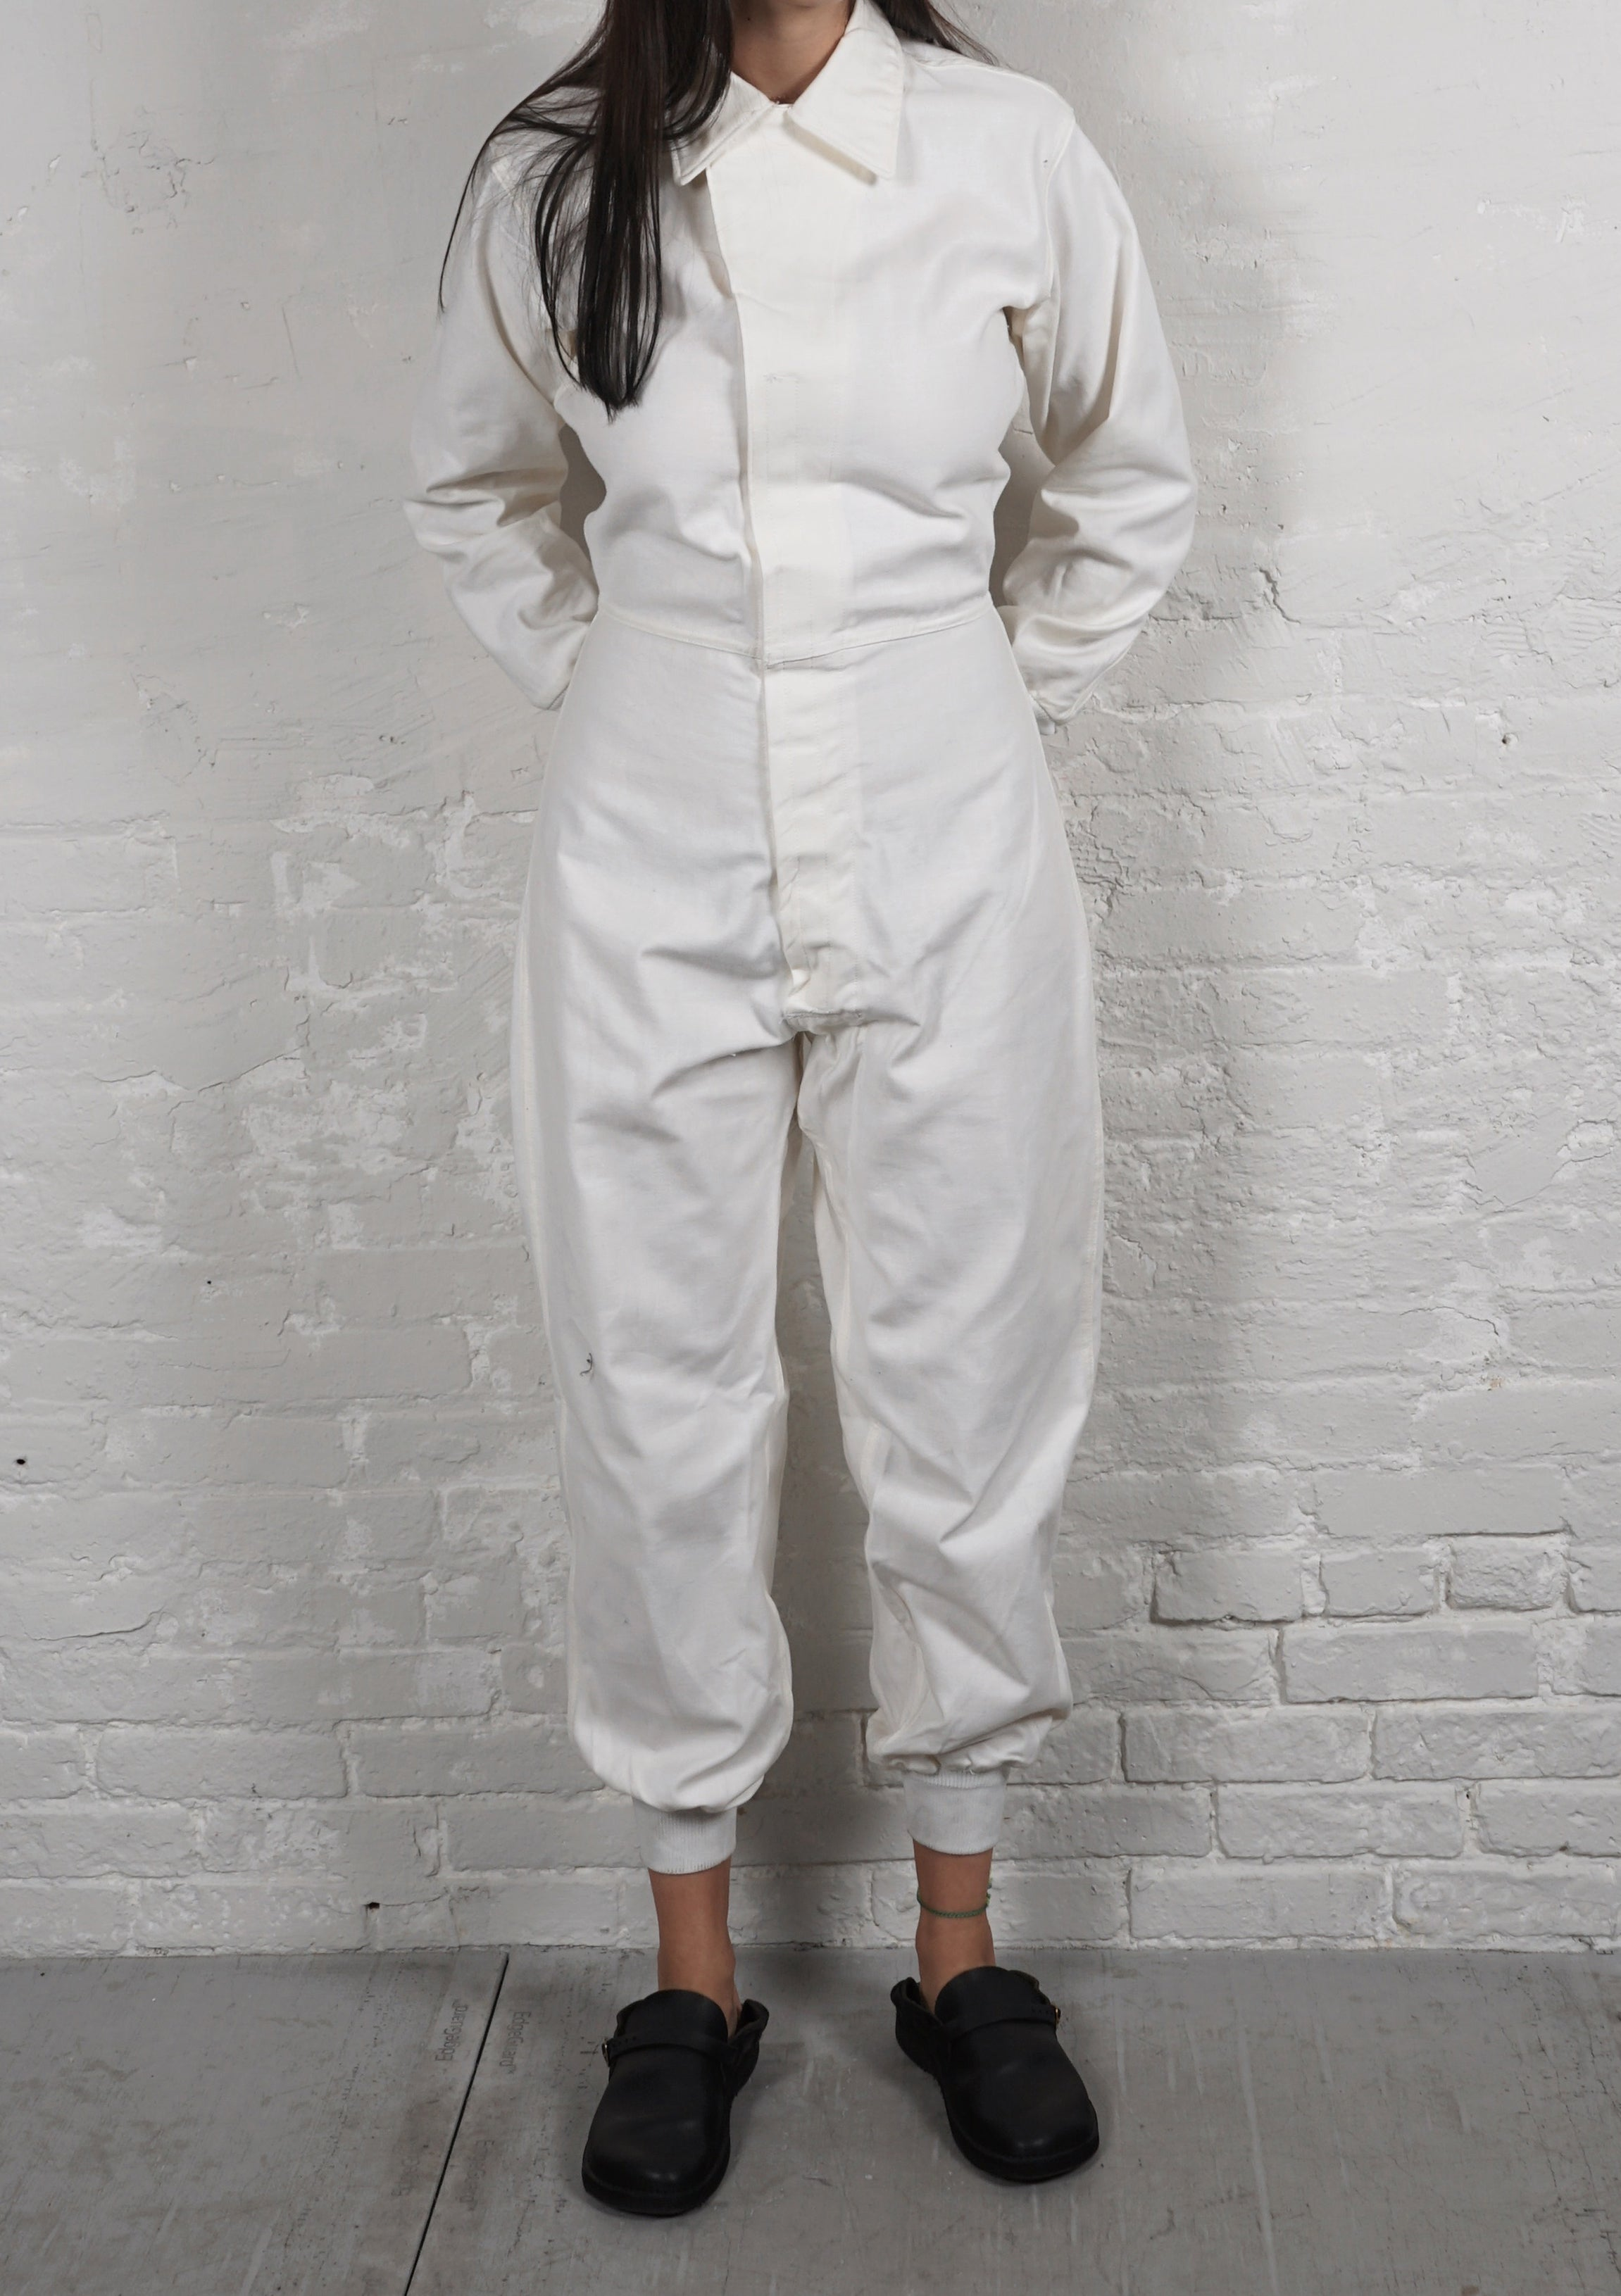 US Military White Cotton Jumpsuits